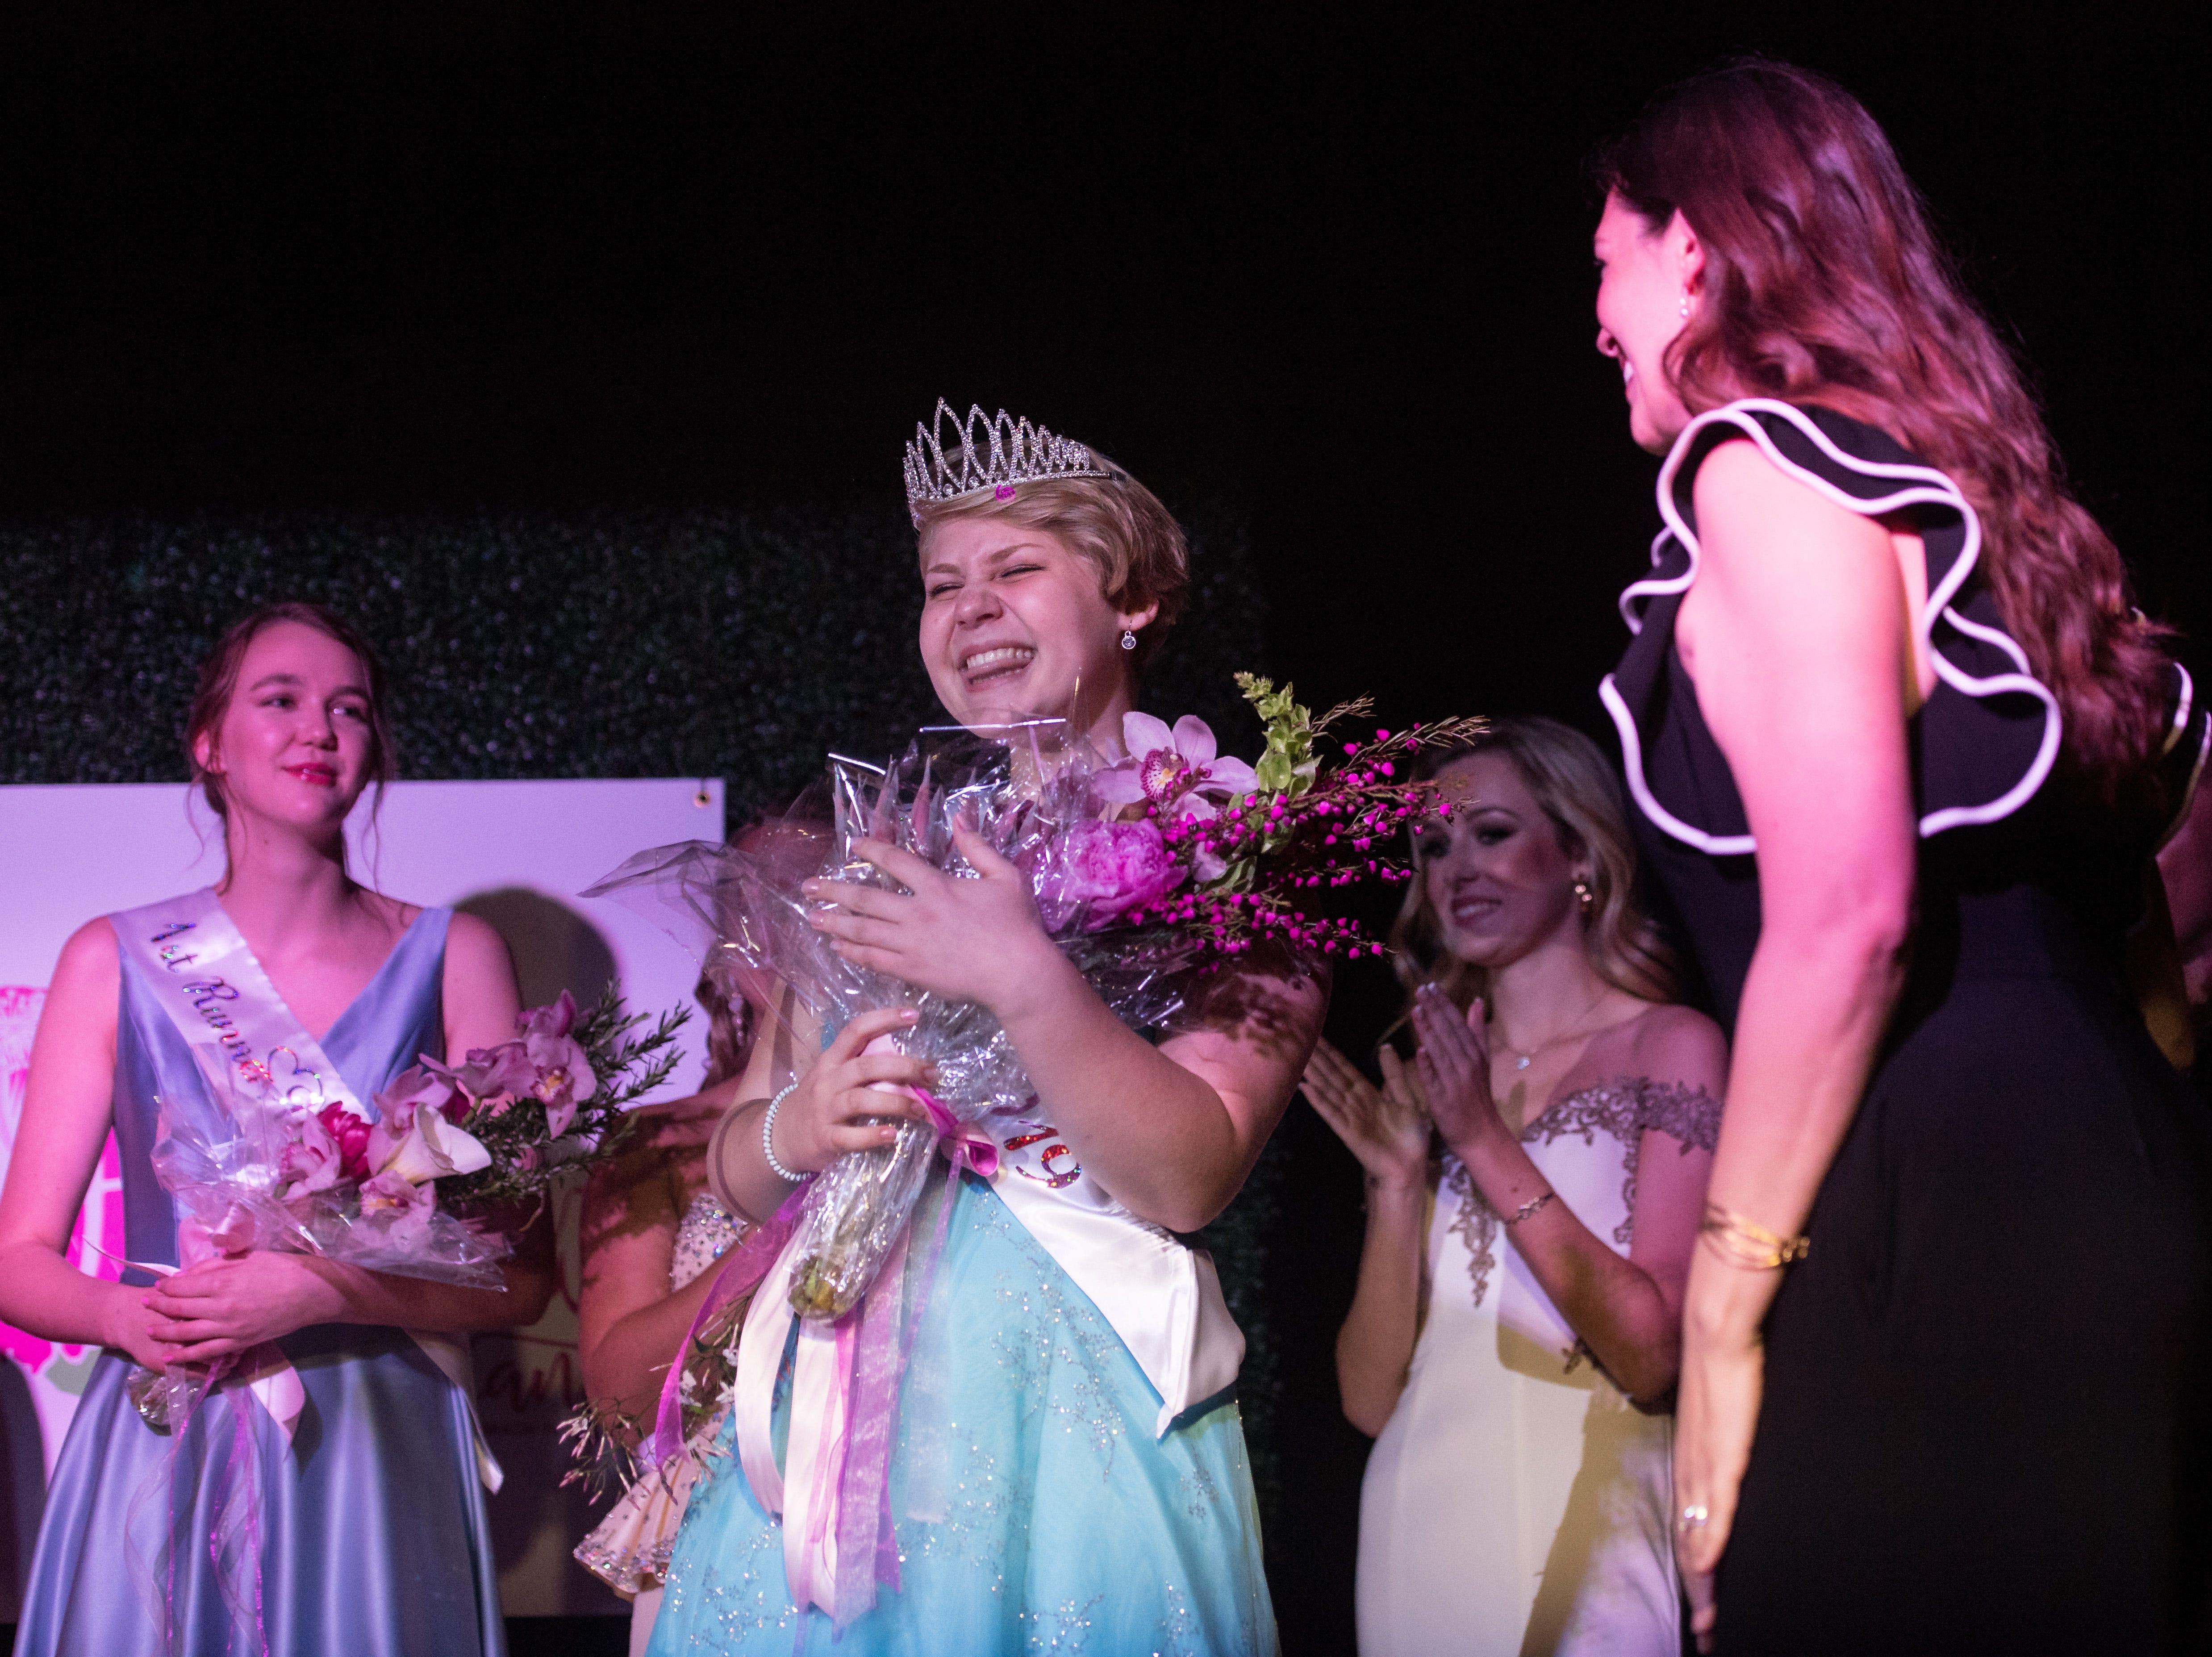 The 2019 Miss Hibiscus Pageant winner Rebekah Parsons (center) reacts with surprise and joy after taking first in the pageant on Thursday, April 11, 2019, at the Heritage Center in Vero Beach.